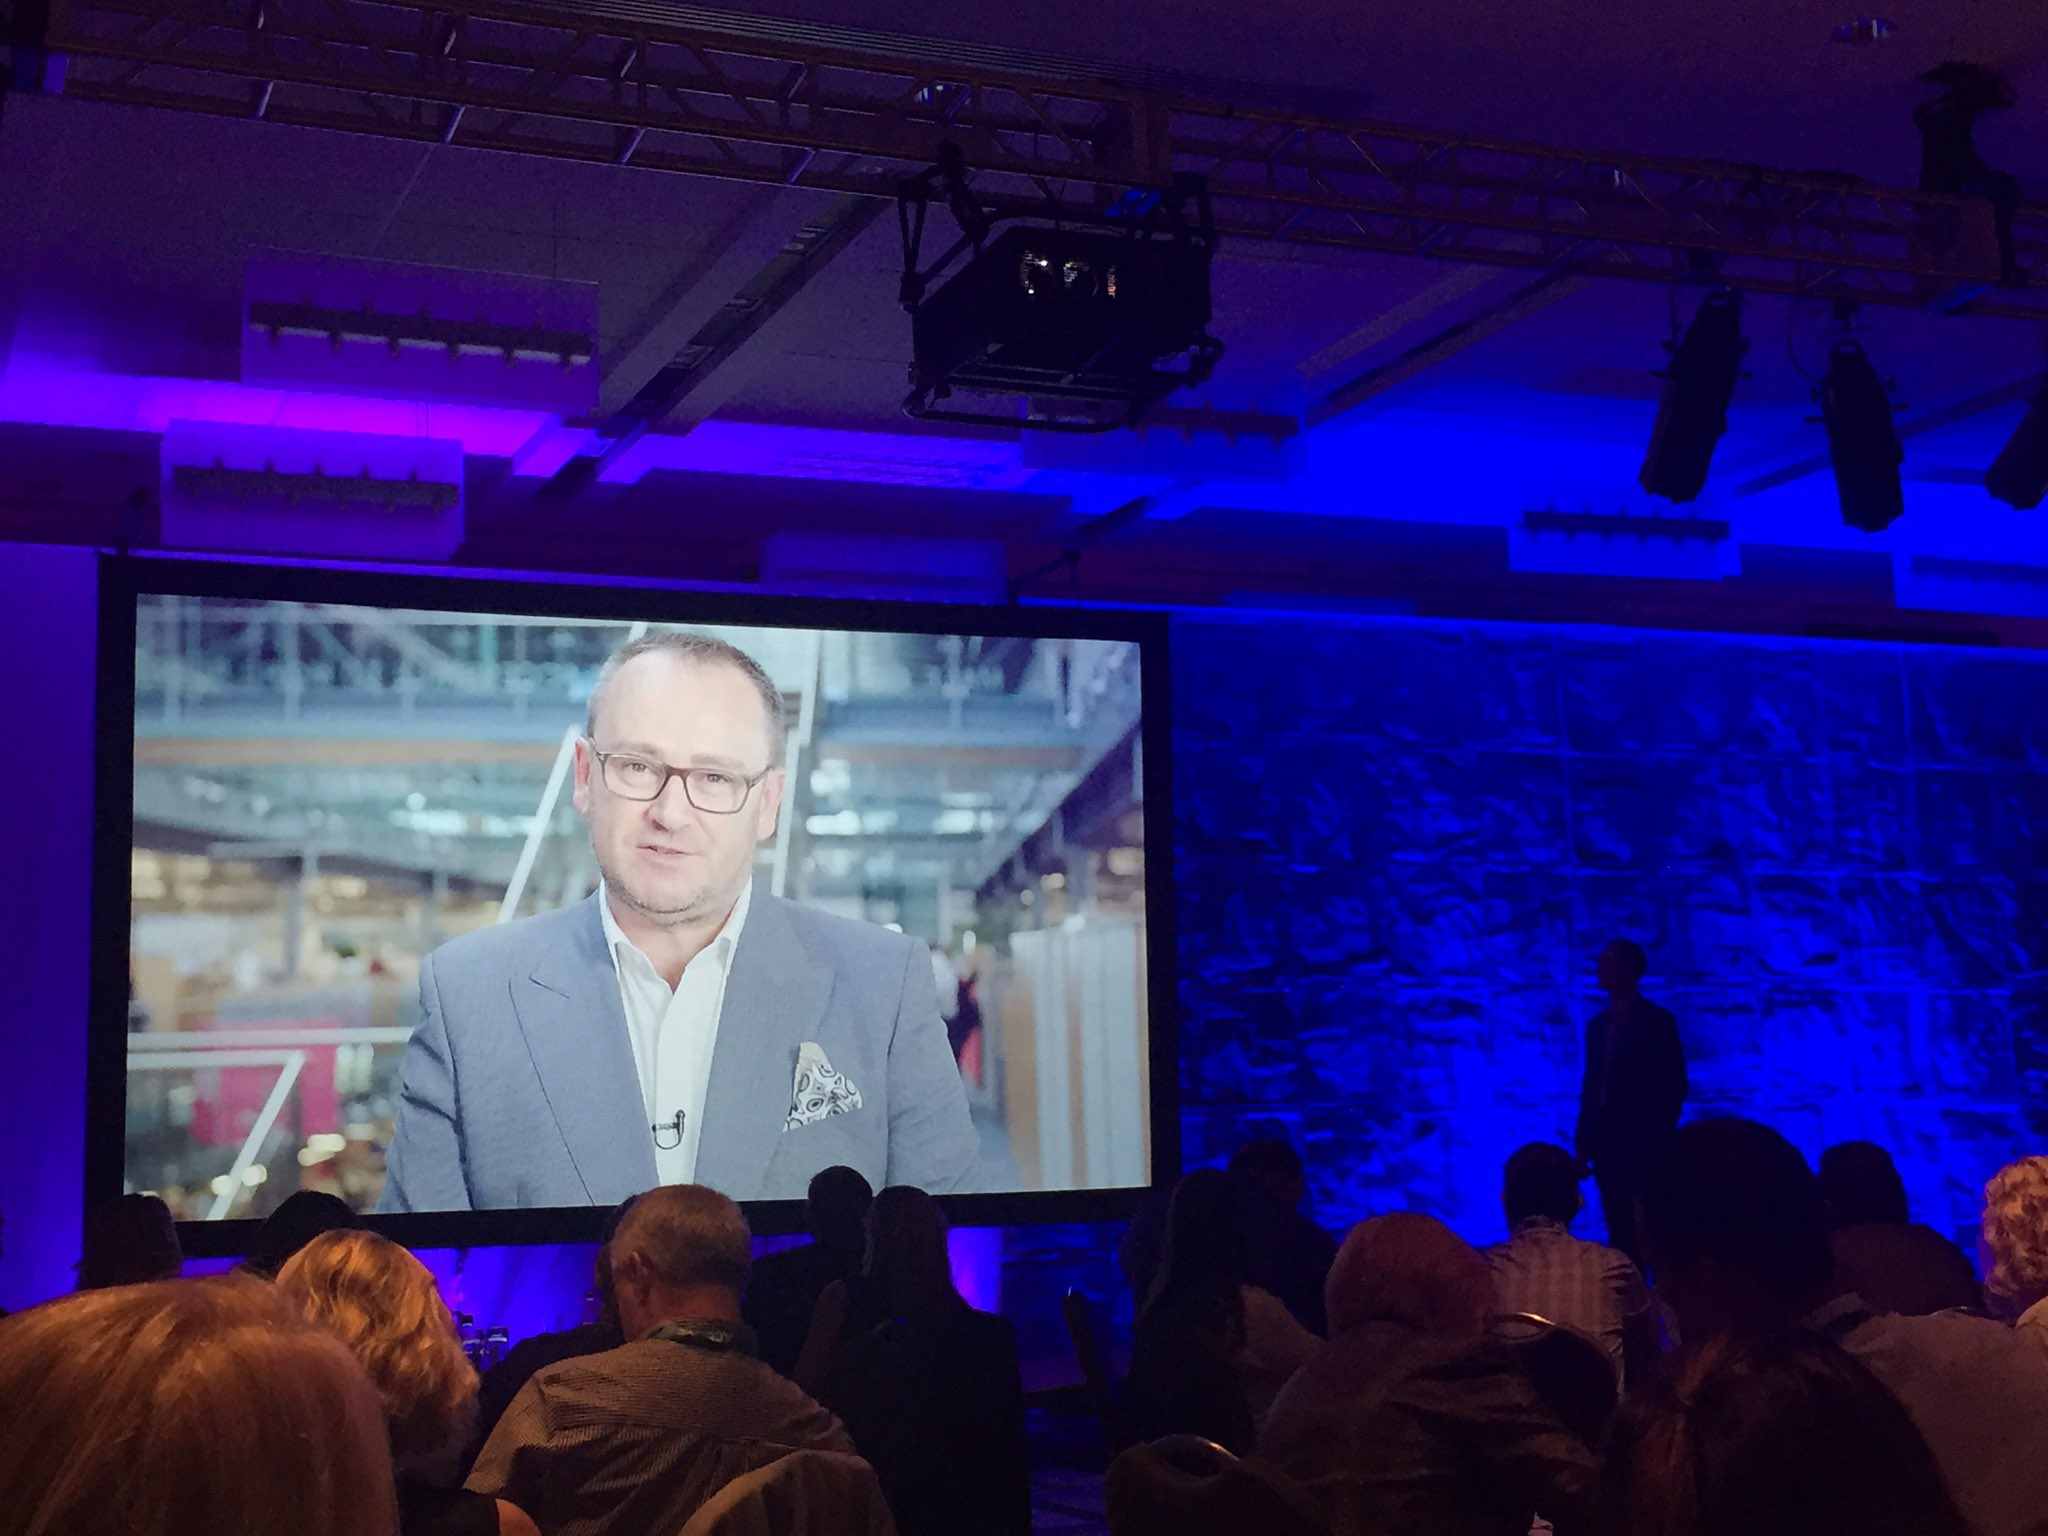 Congratulations @colinjwatt & the @ShopDirect team on your very impressive #engagement results w @Achievers #AACE16 https://t.co/5fIoU94wwn